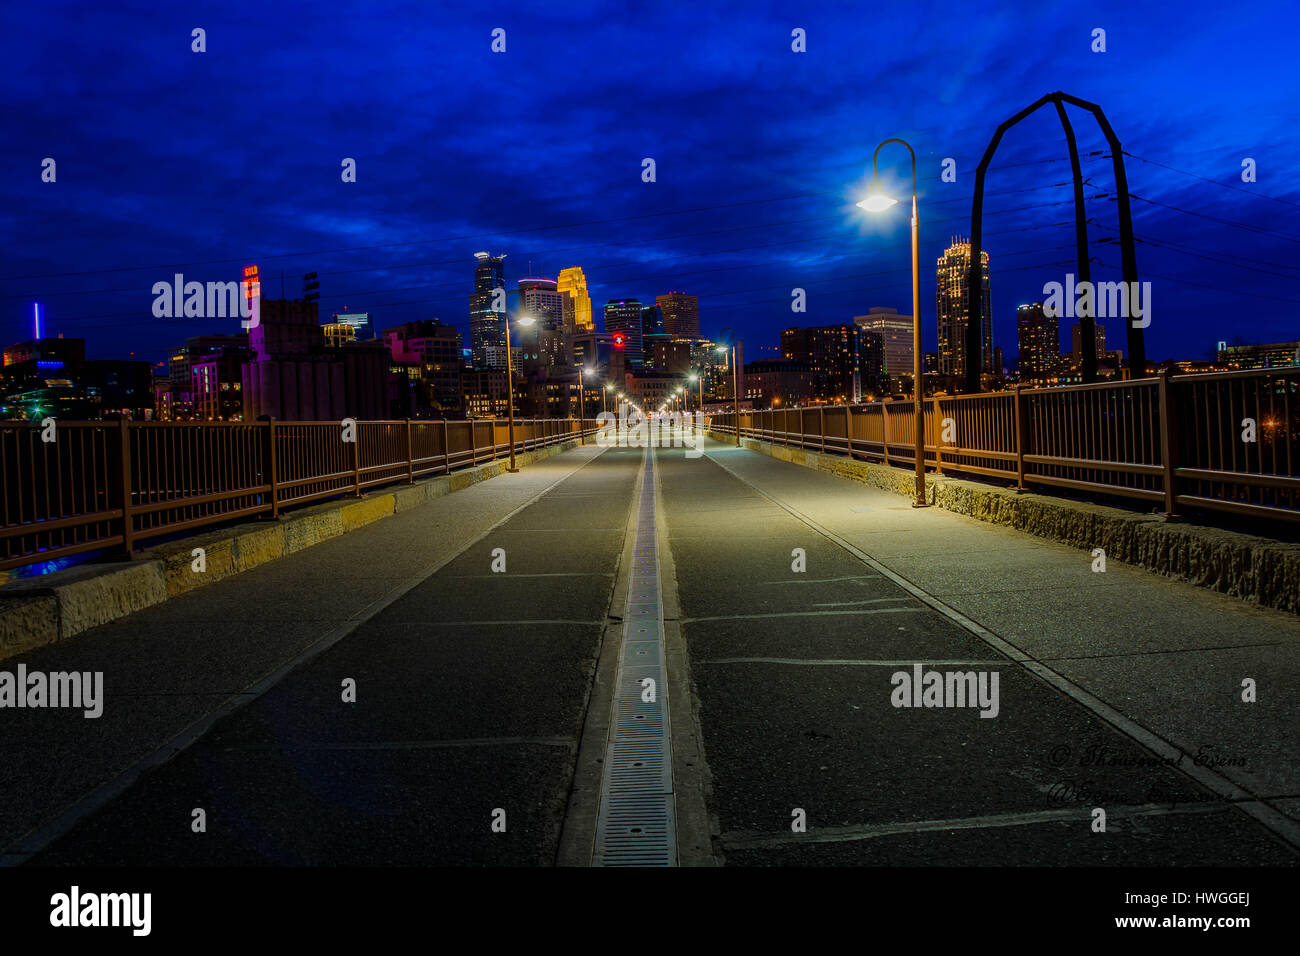 Chicago city scape at night - Stock Image